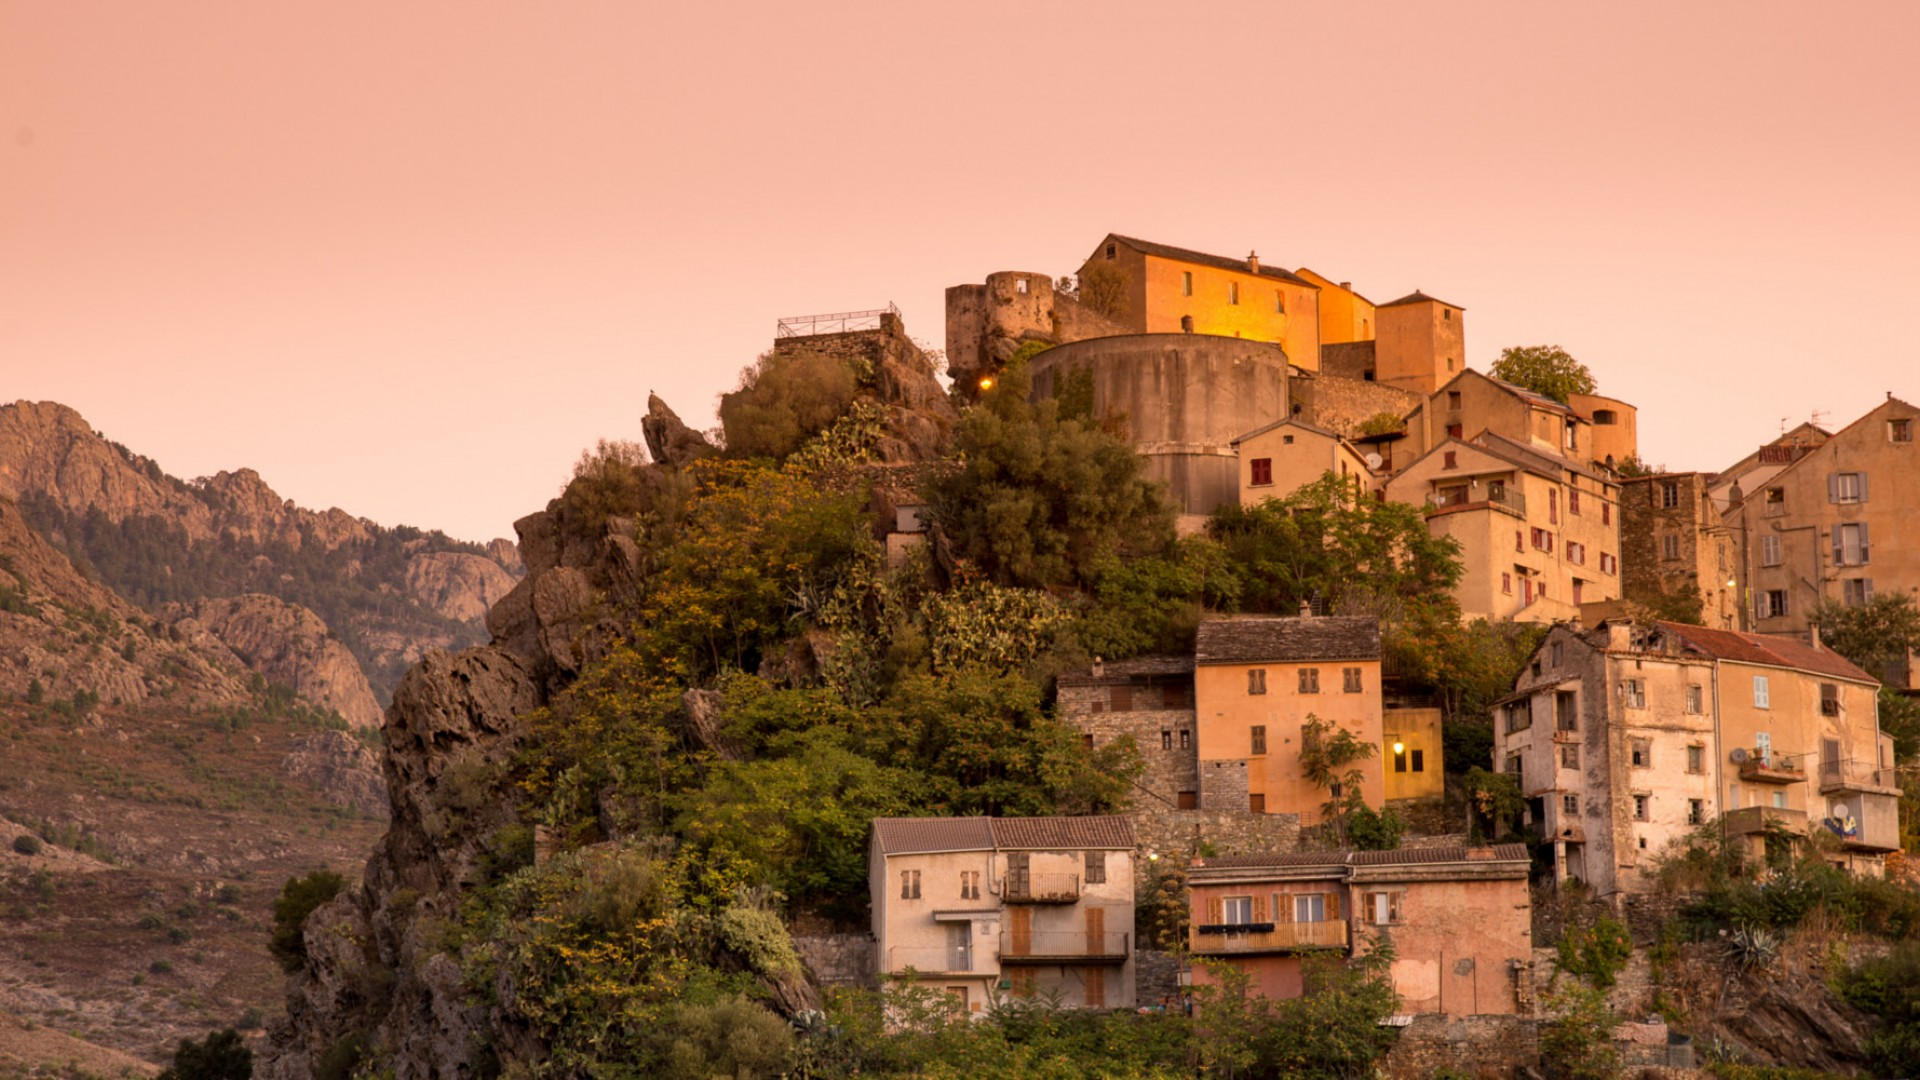 houses on a hill in Corsica, France